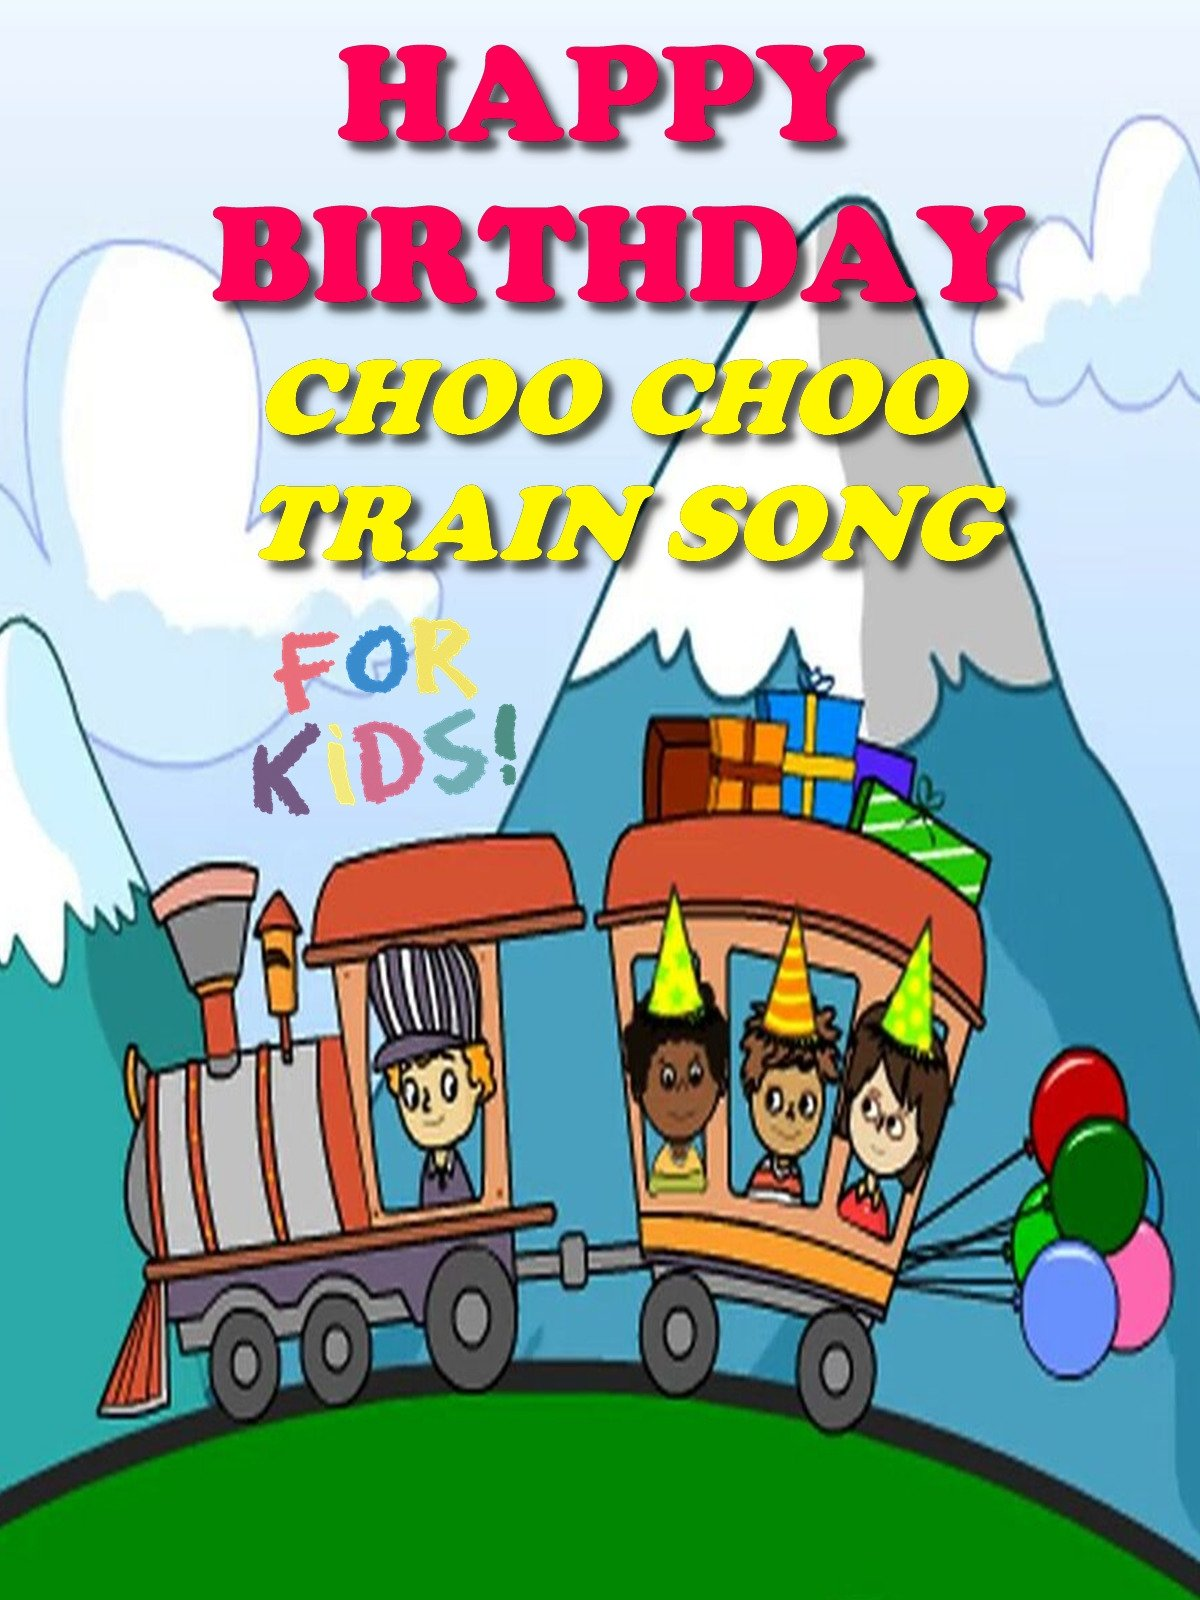 Happy Birthday Choo Choo Train Song for Kids